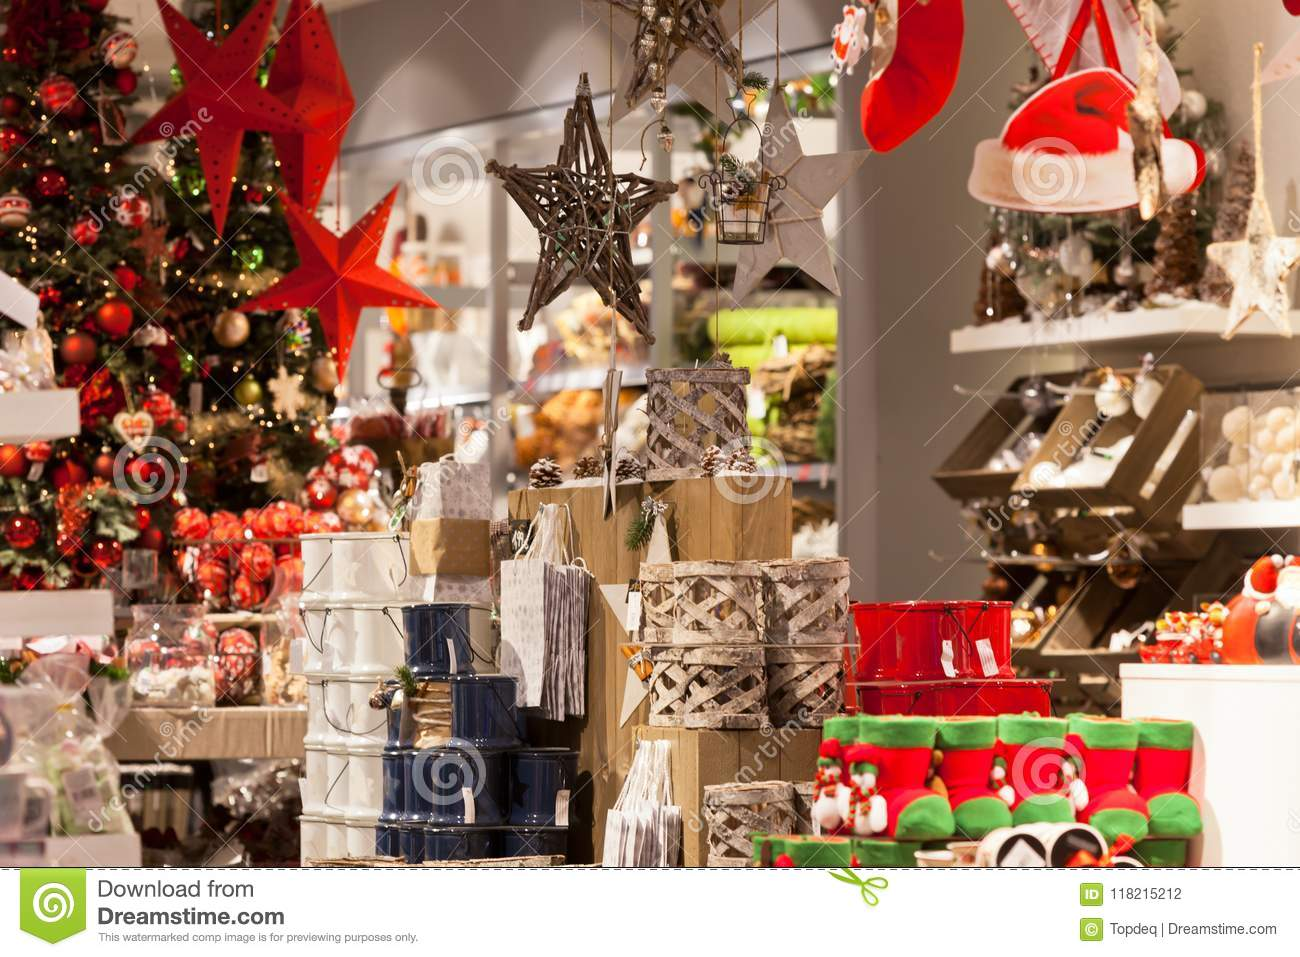 Christmas Home Decoration In A Shop Stock Photo Image Of Indoors